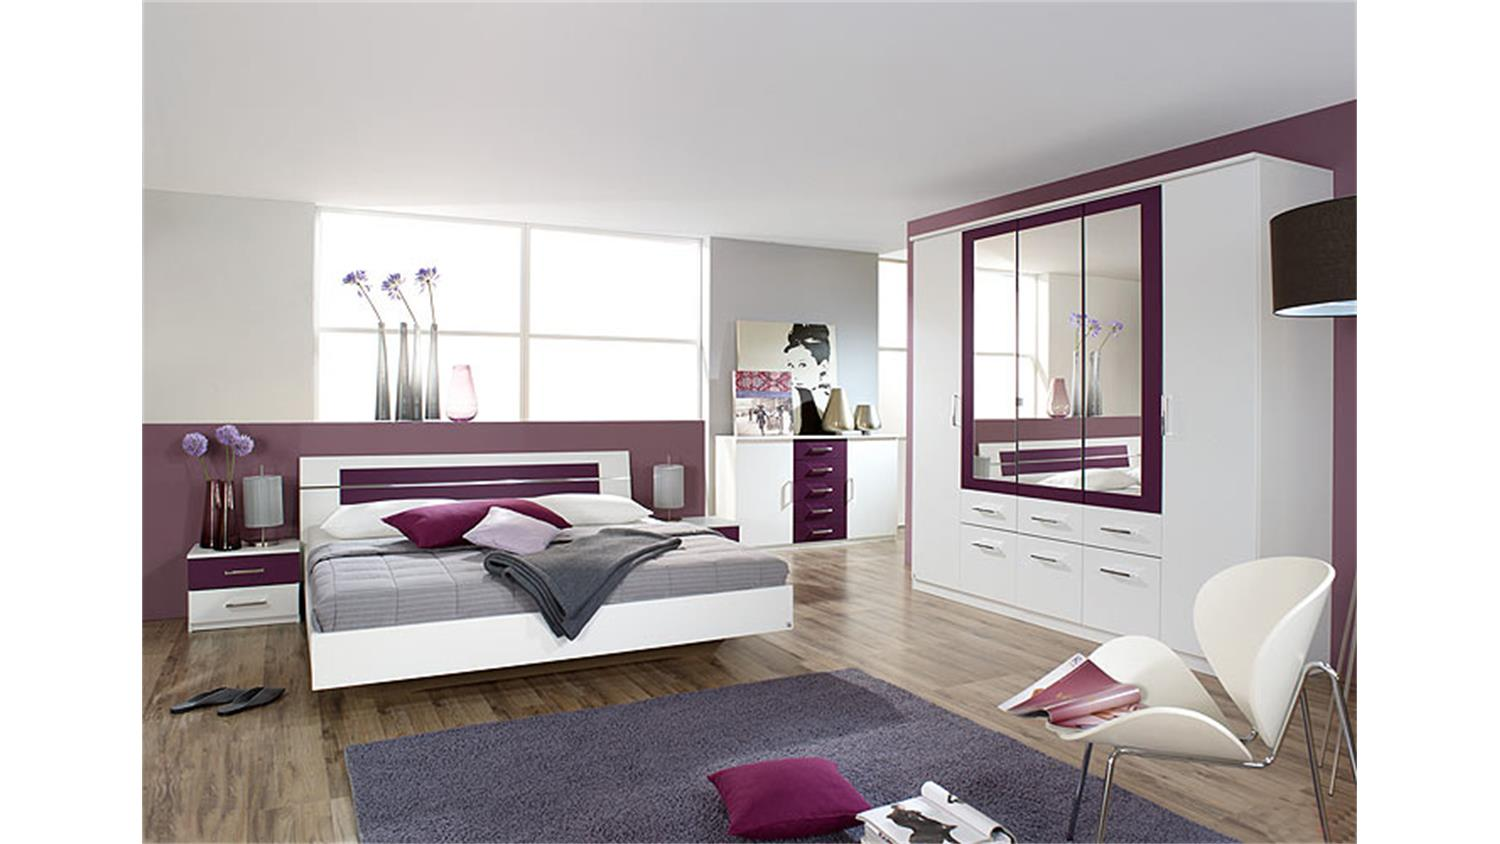 schlafzimmer set burano in wei und brombeer 4 teilig. Black Bedroom Furniture Sets. Home Design Ideas